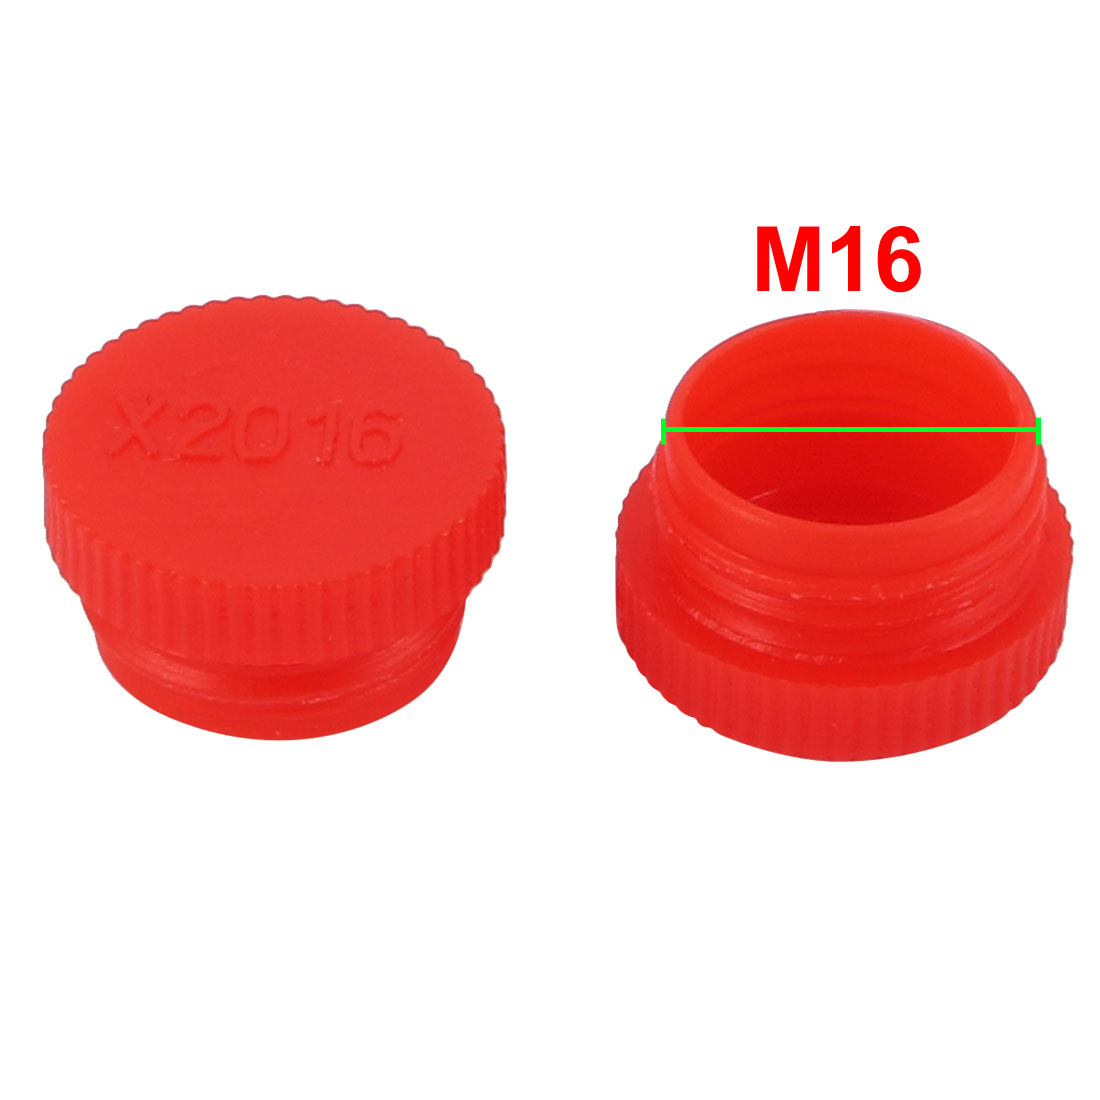 42pcs M16 x 1.5mm PE External Threaded Tube Insert Cap Screw-in Cover Red - image 1 of 2